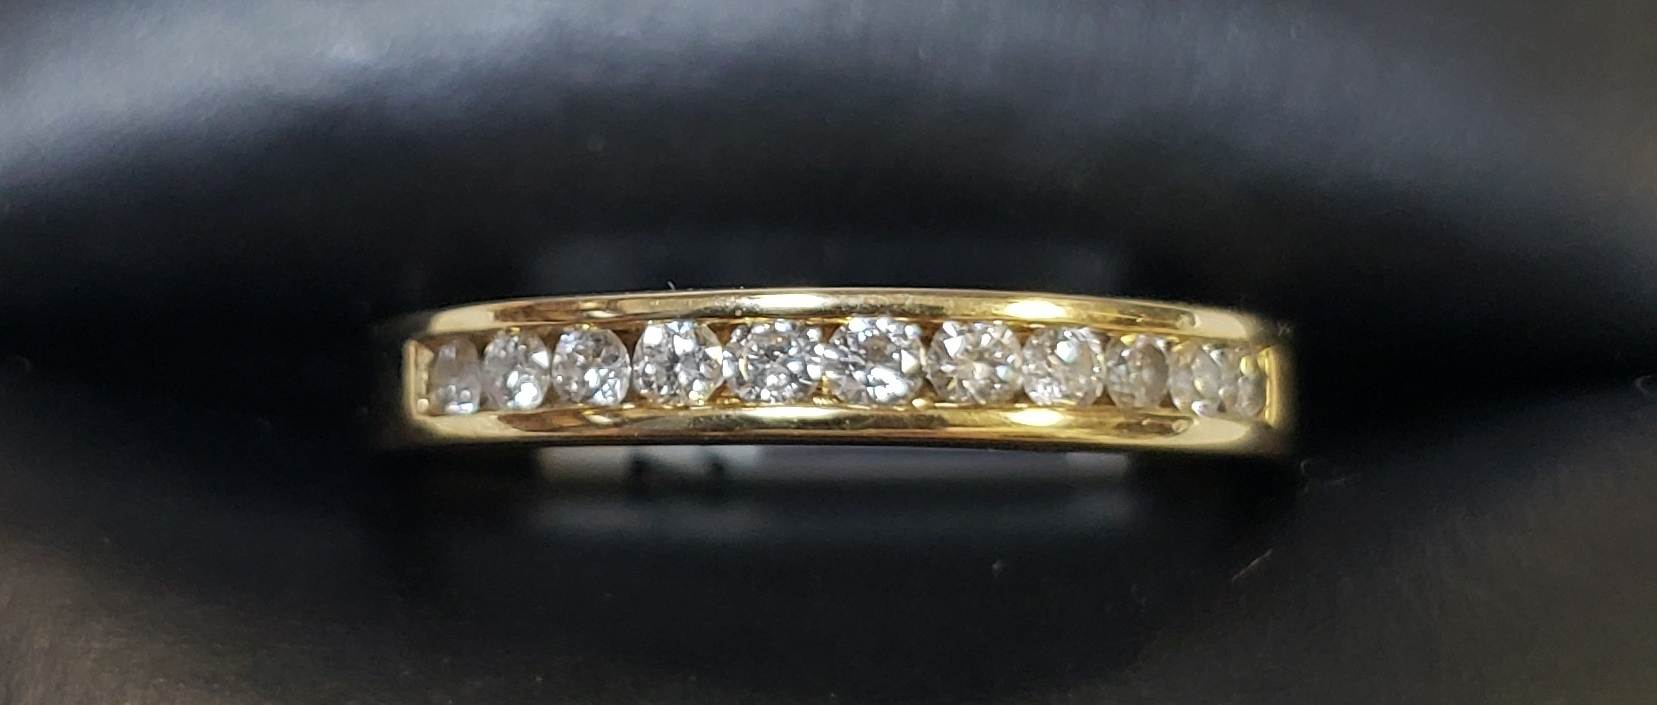 14KT - YELLOW GOLD - SIZE 6.5 - APPROXIMATELY 1/3 CT TW DIAMOND INLAY BAND